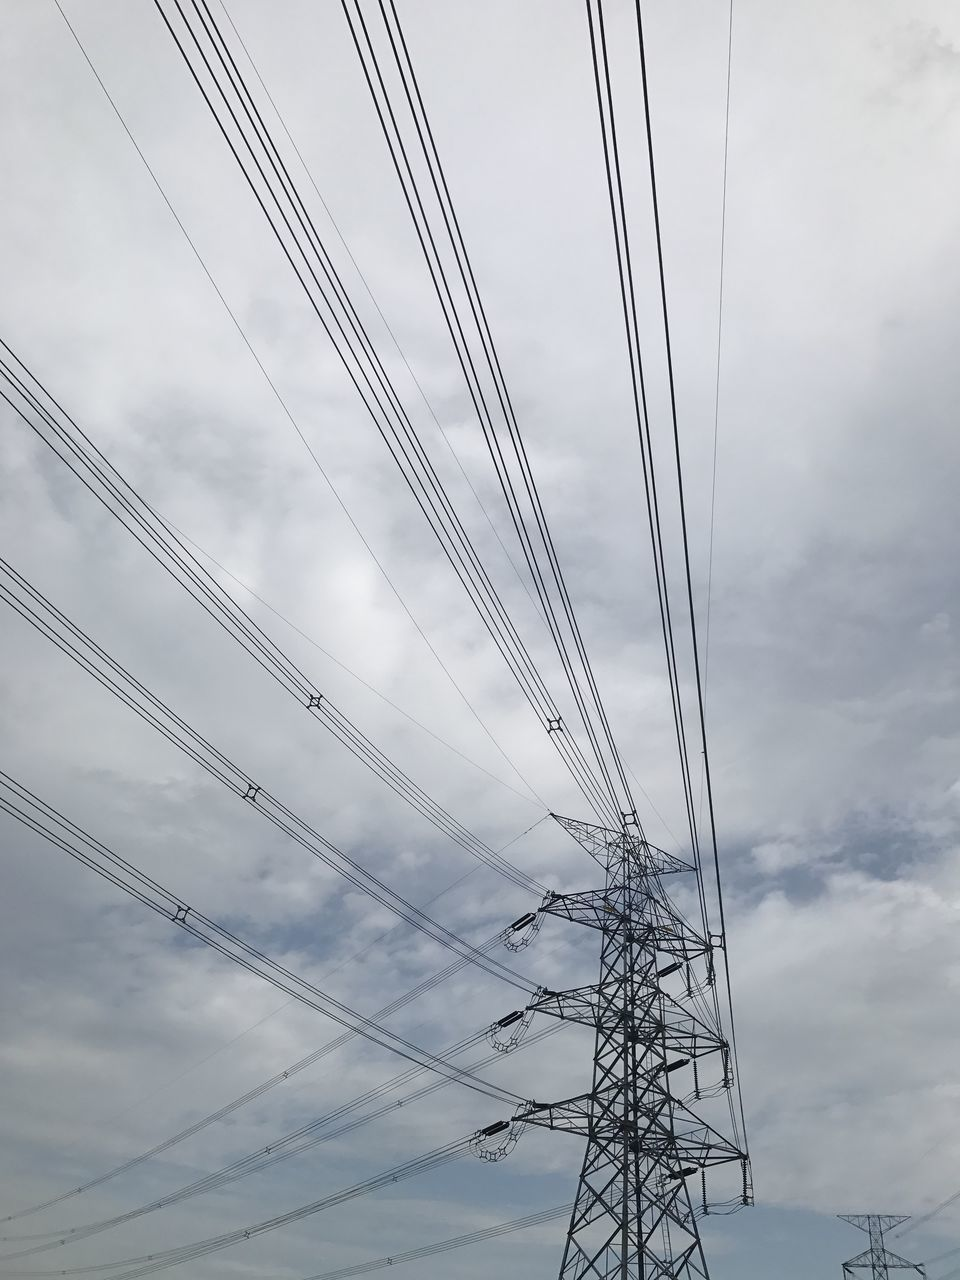 cable, connection, electricity, power supply, power line, technology, electricity pylon, fuel and power generation, sky, cloud - sky, low angle view, electricity tower, day, no people, outdoors, complexity